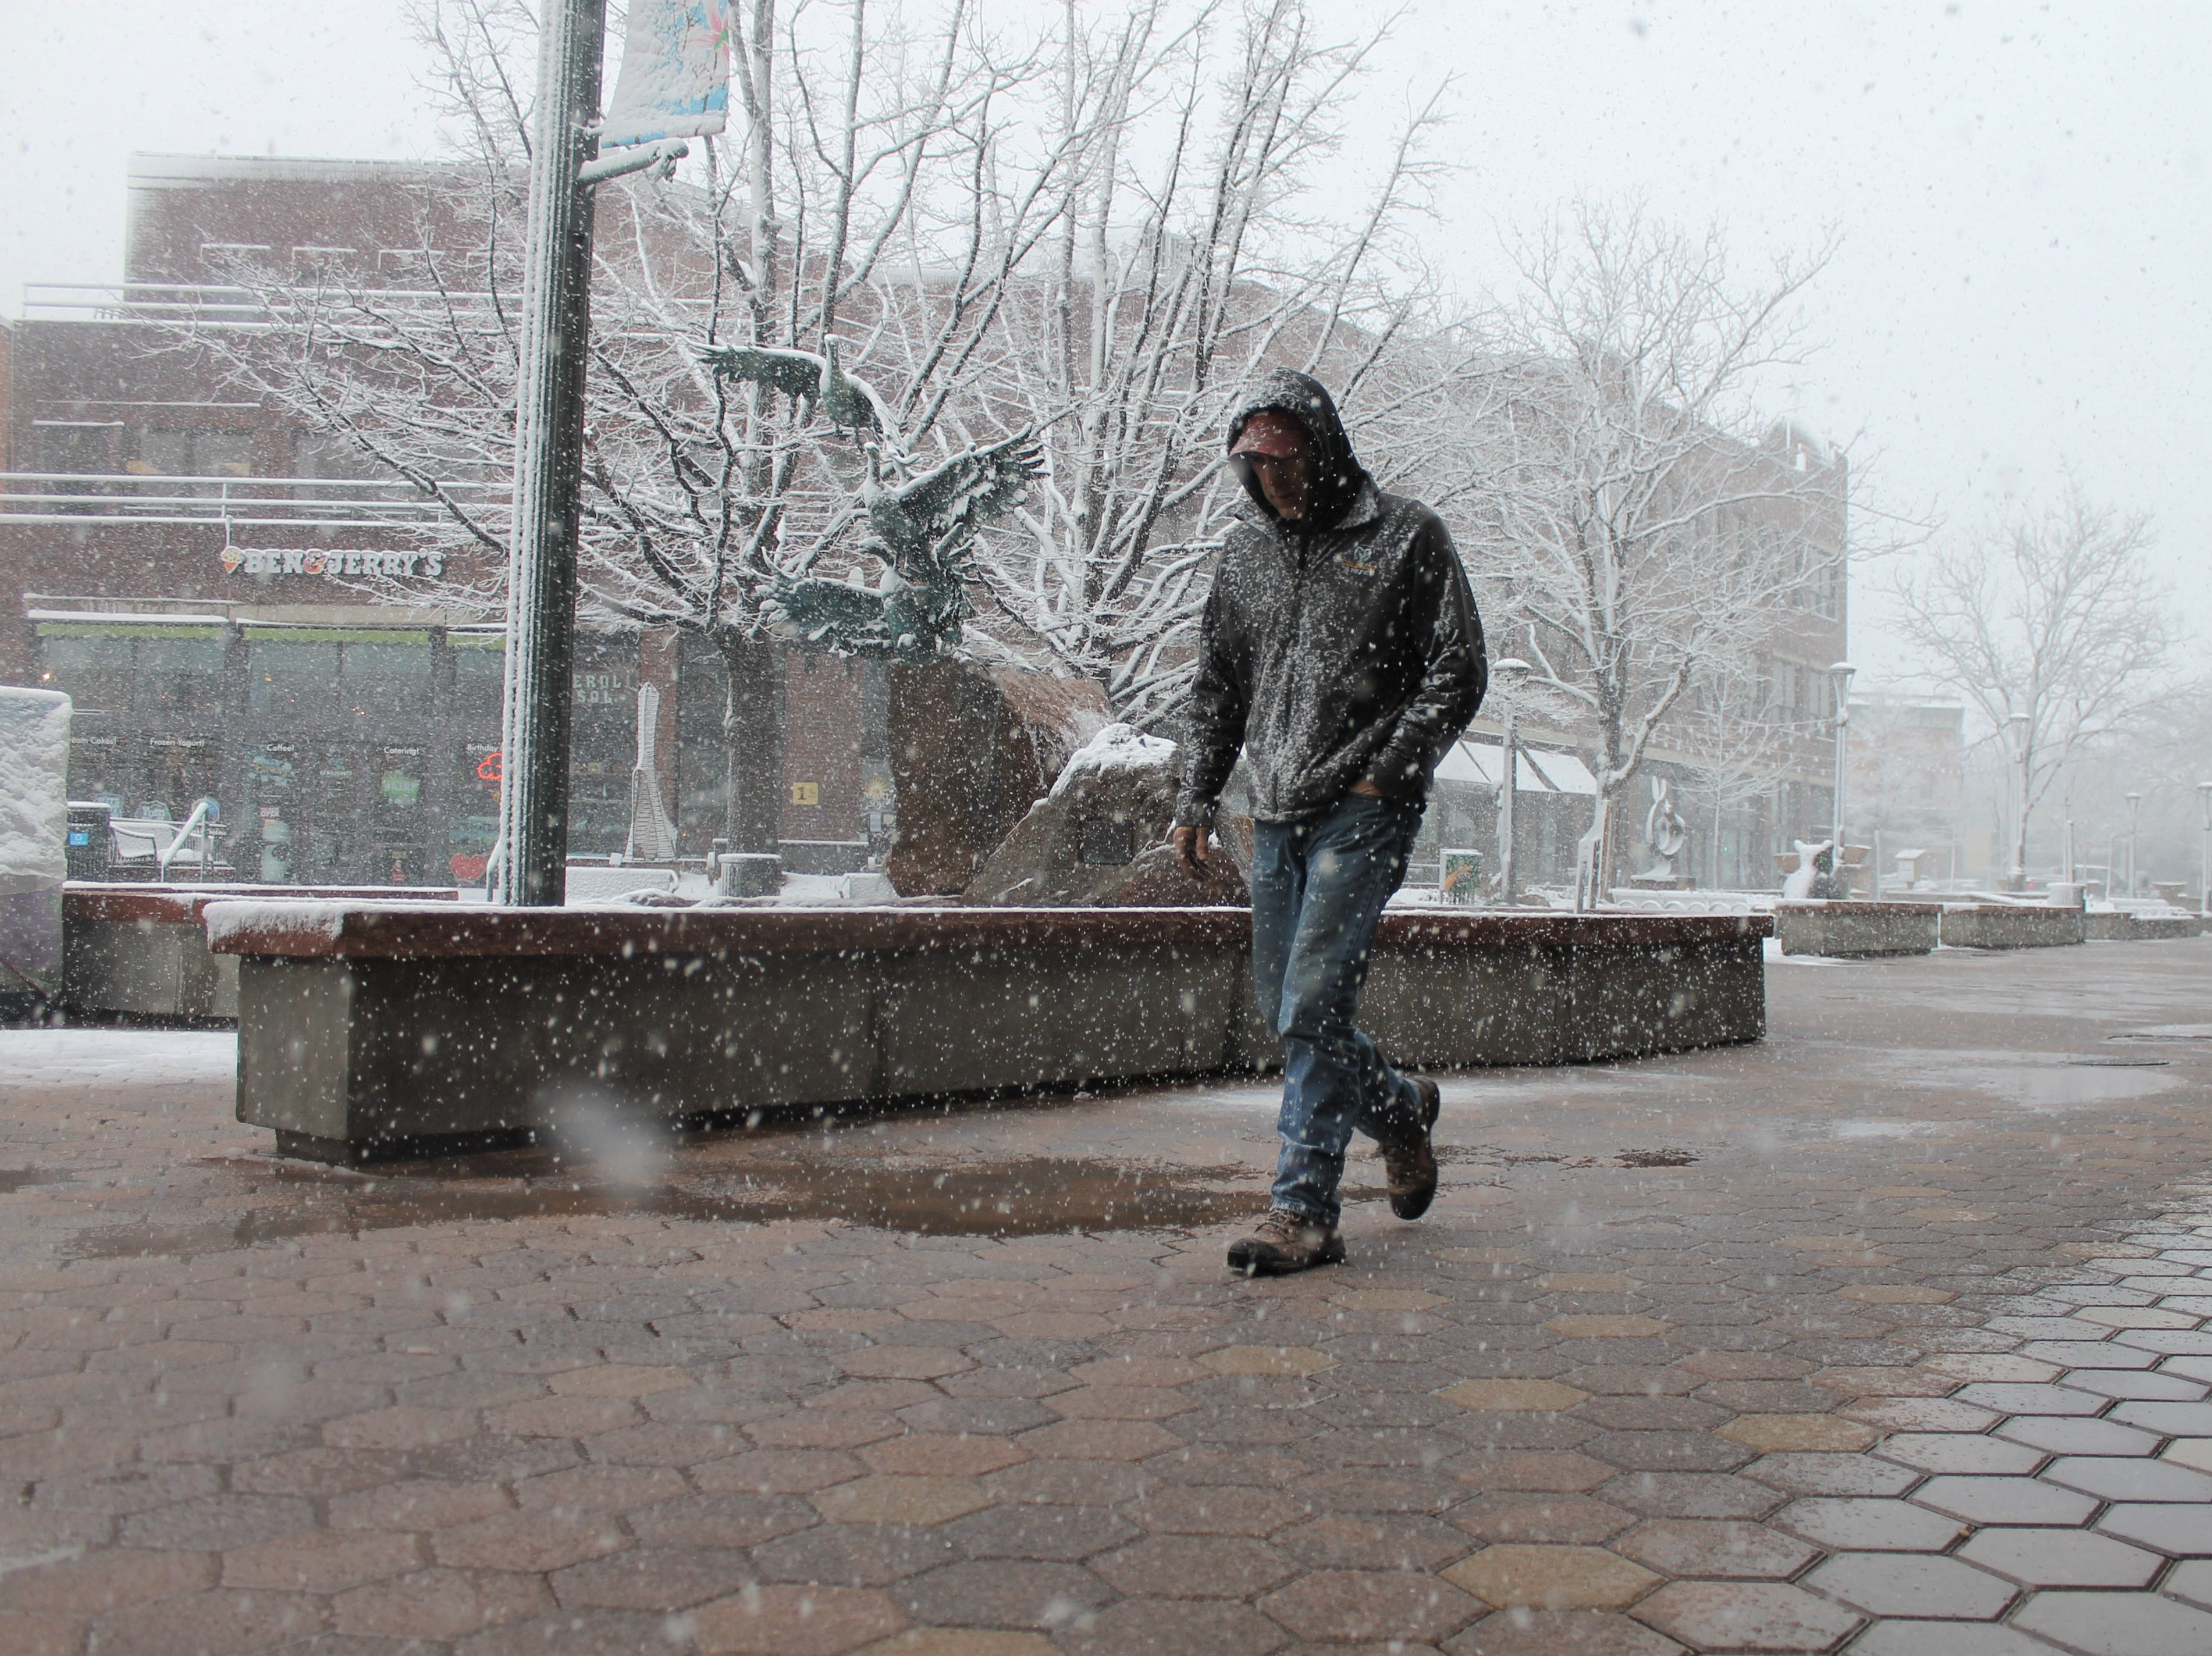 Nathan Emmons walks through Old Town square Wednesday, April 10, after a lunch break. Emmons is from Montana,  he said, and the Wednesday blizzard reminded him a bit of home.